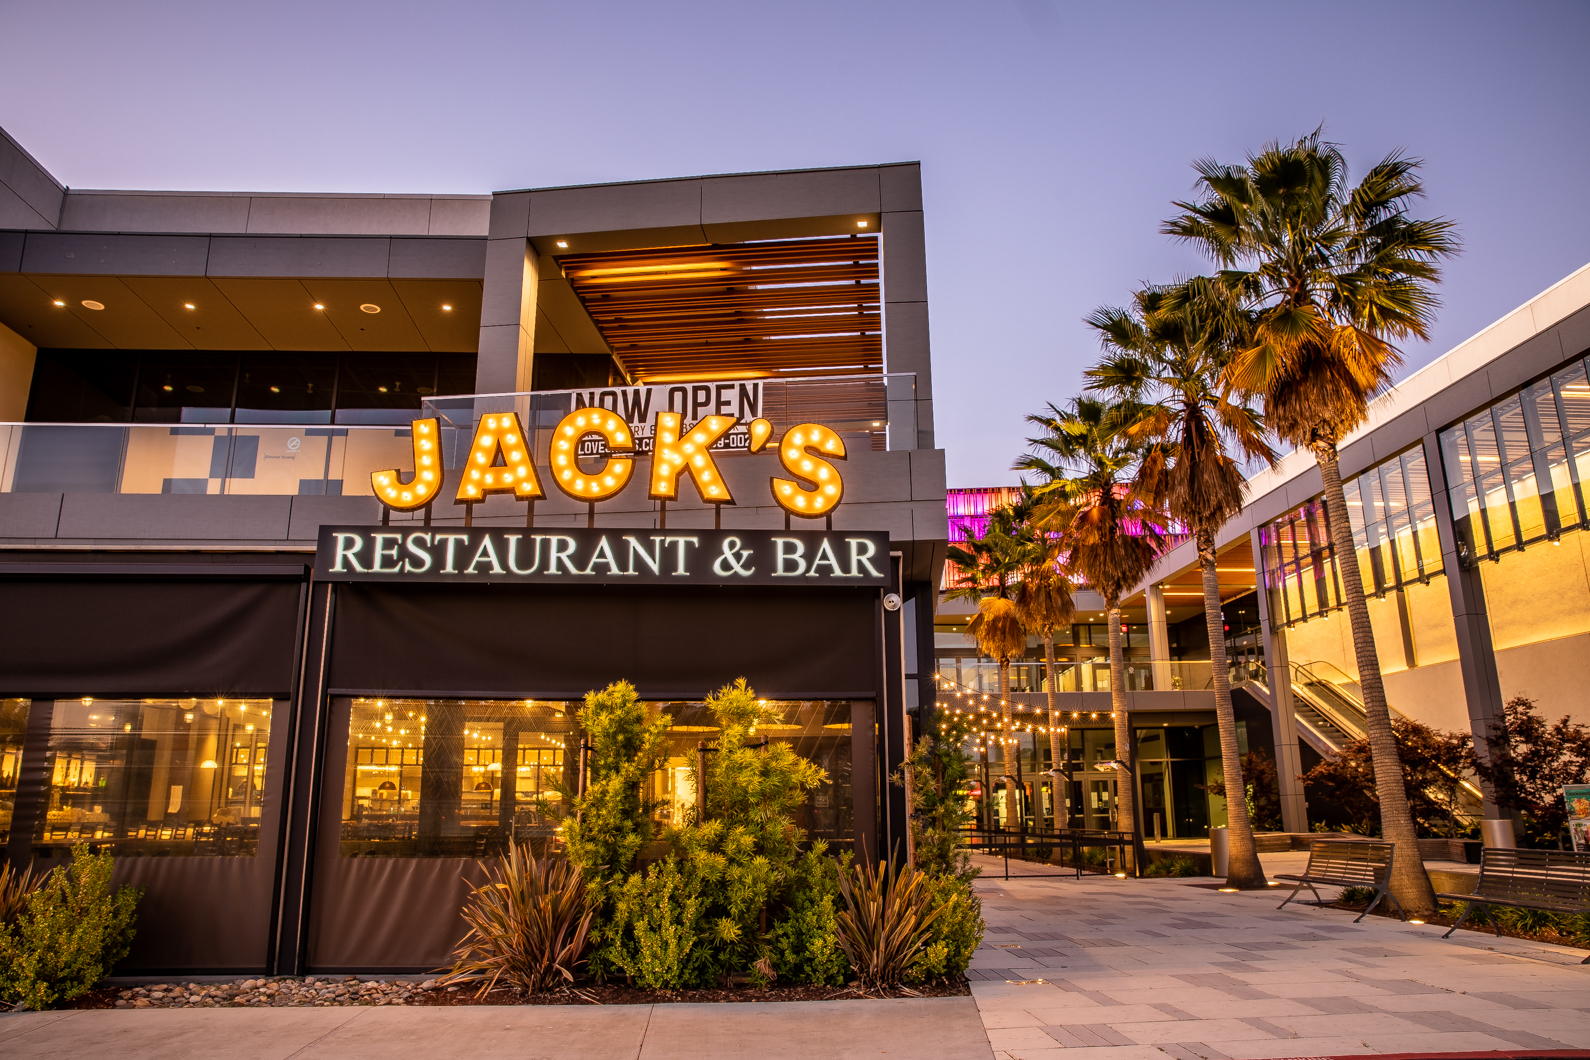 7Signs Re-Sized Jack's (31).jpg